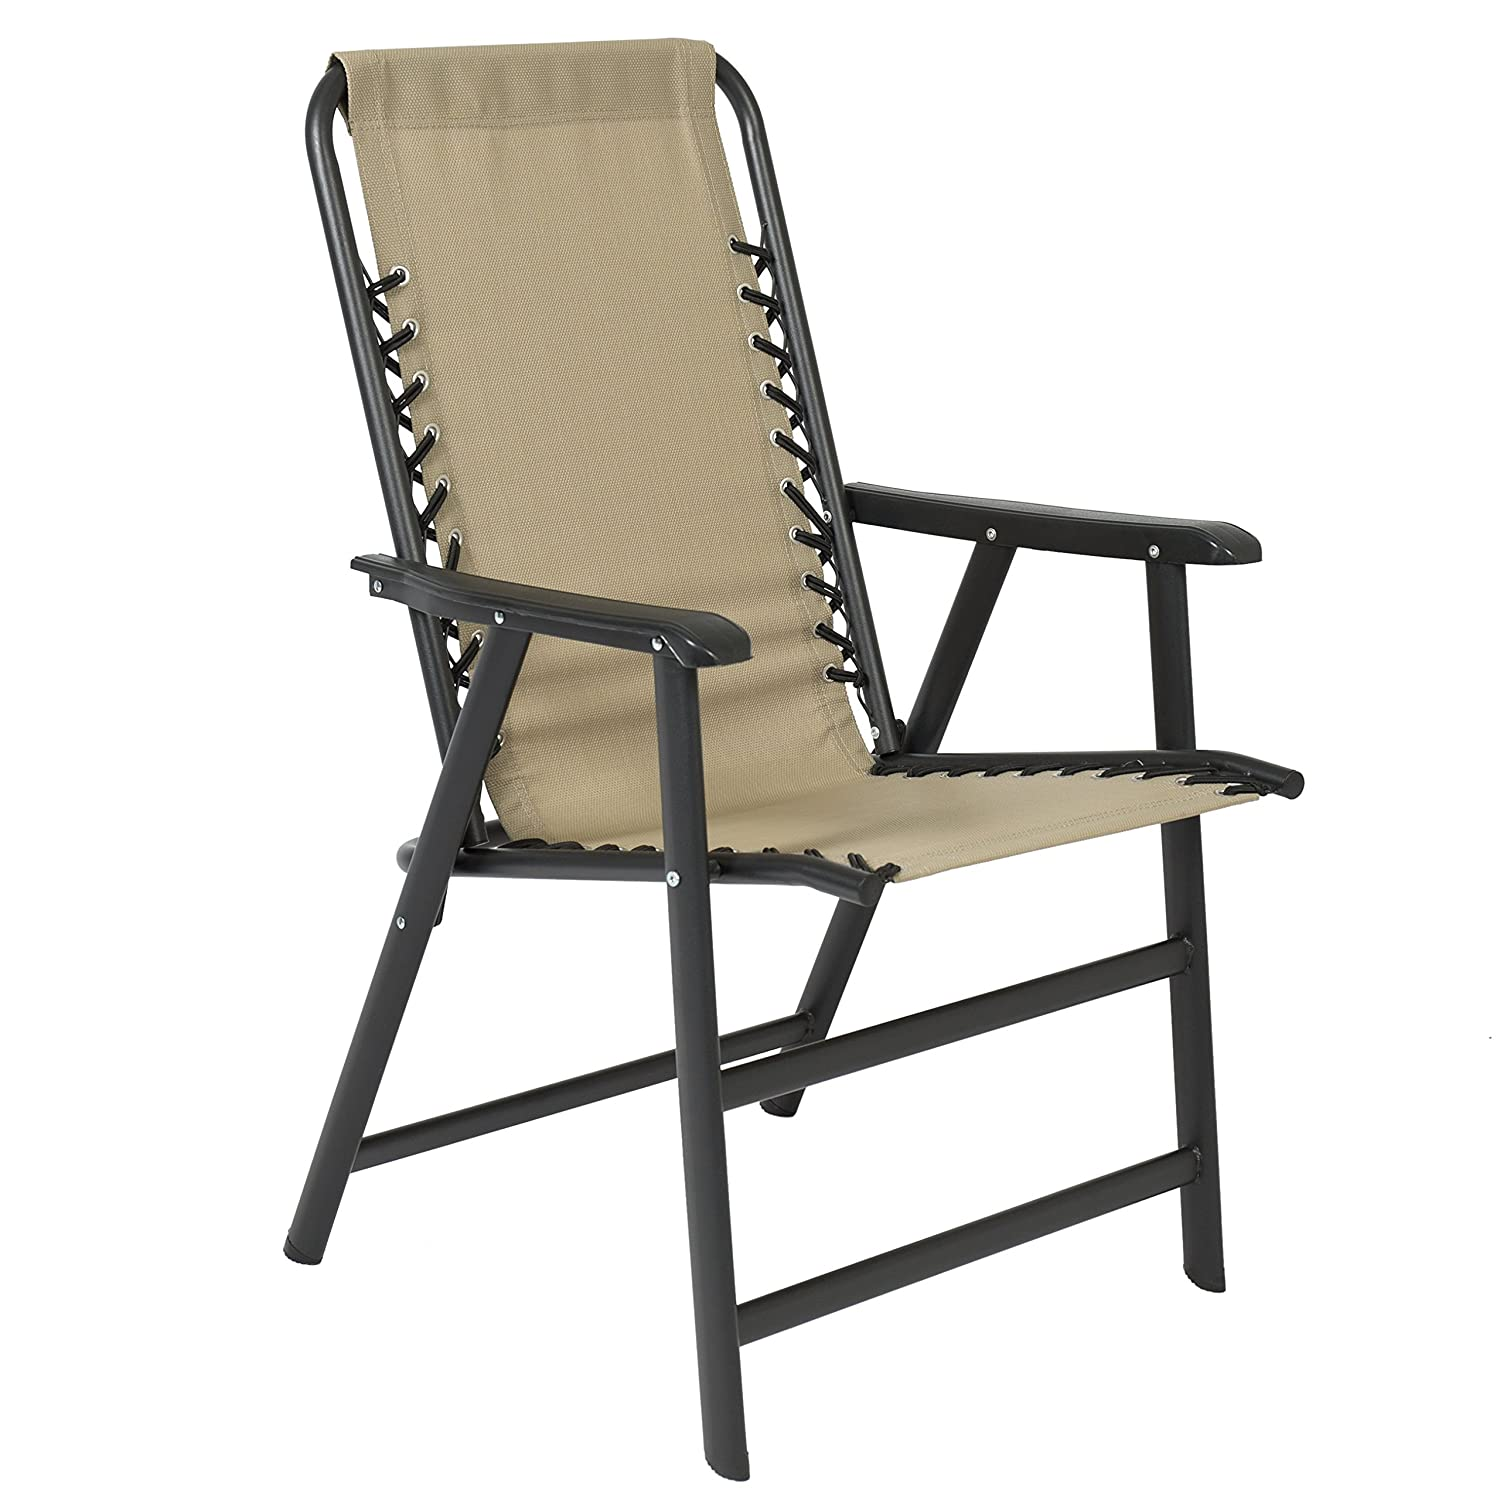 Best Choice Products Lounge Suspension Folding Chair Outdoor Patio UV Resista